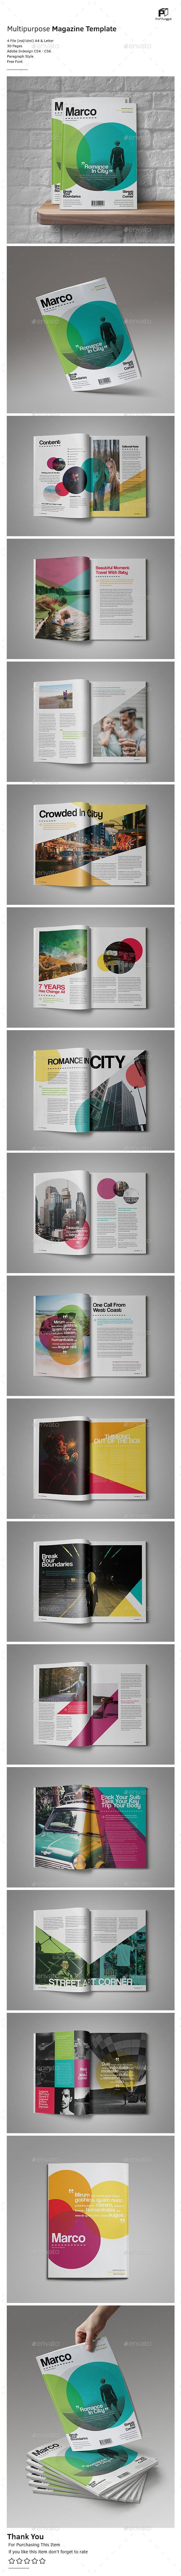 Catchy Magazine Vol.5 — InDesign INDD #universal #blue • Available here ➝ https://graphicriver.net/item/catchy-magazine-vol5/20682104?ref=pxcr